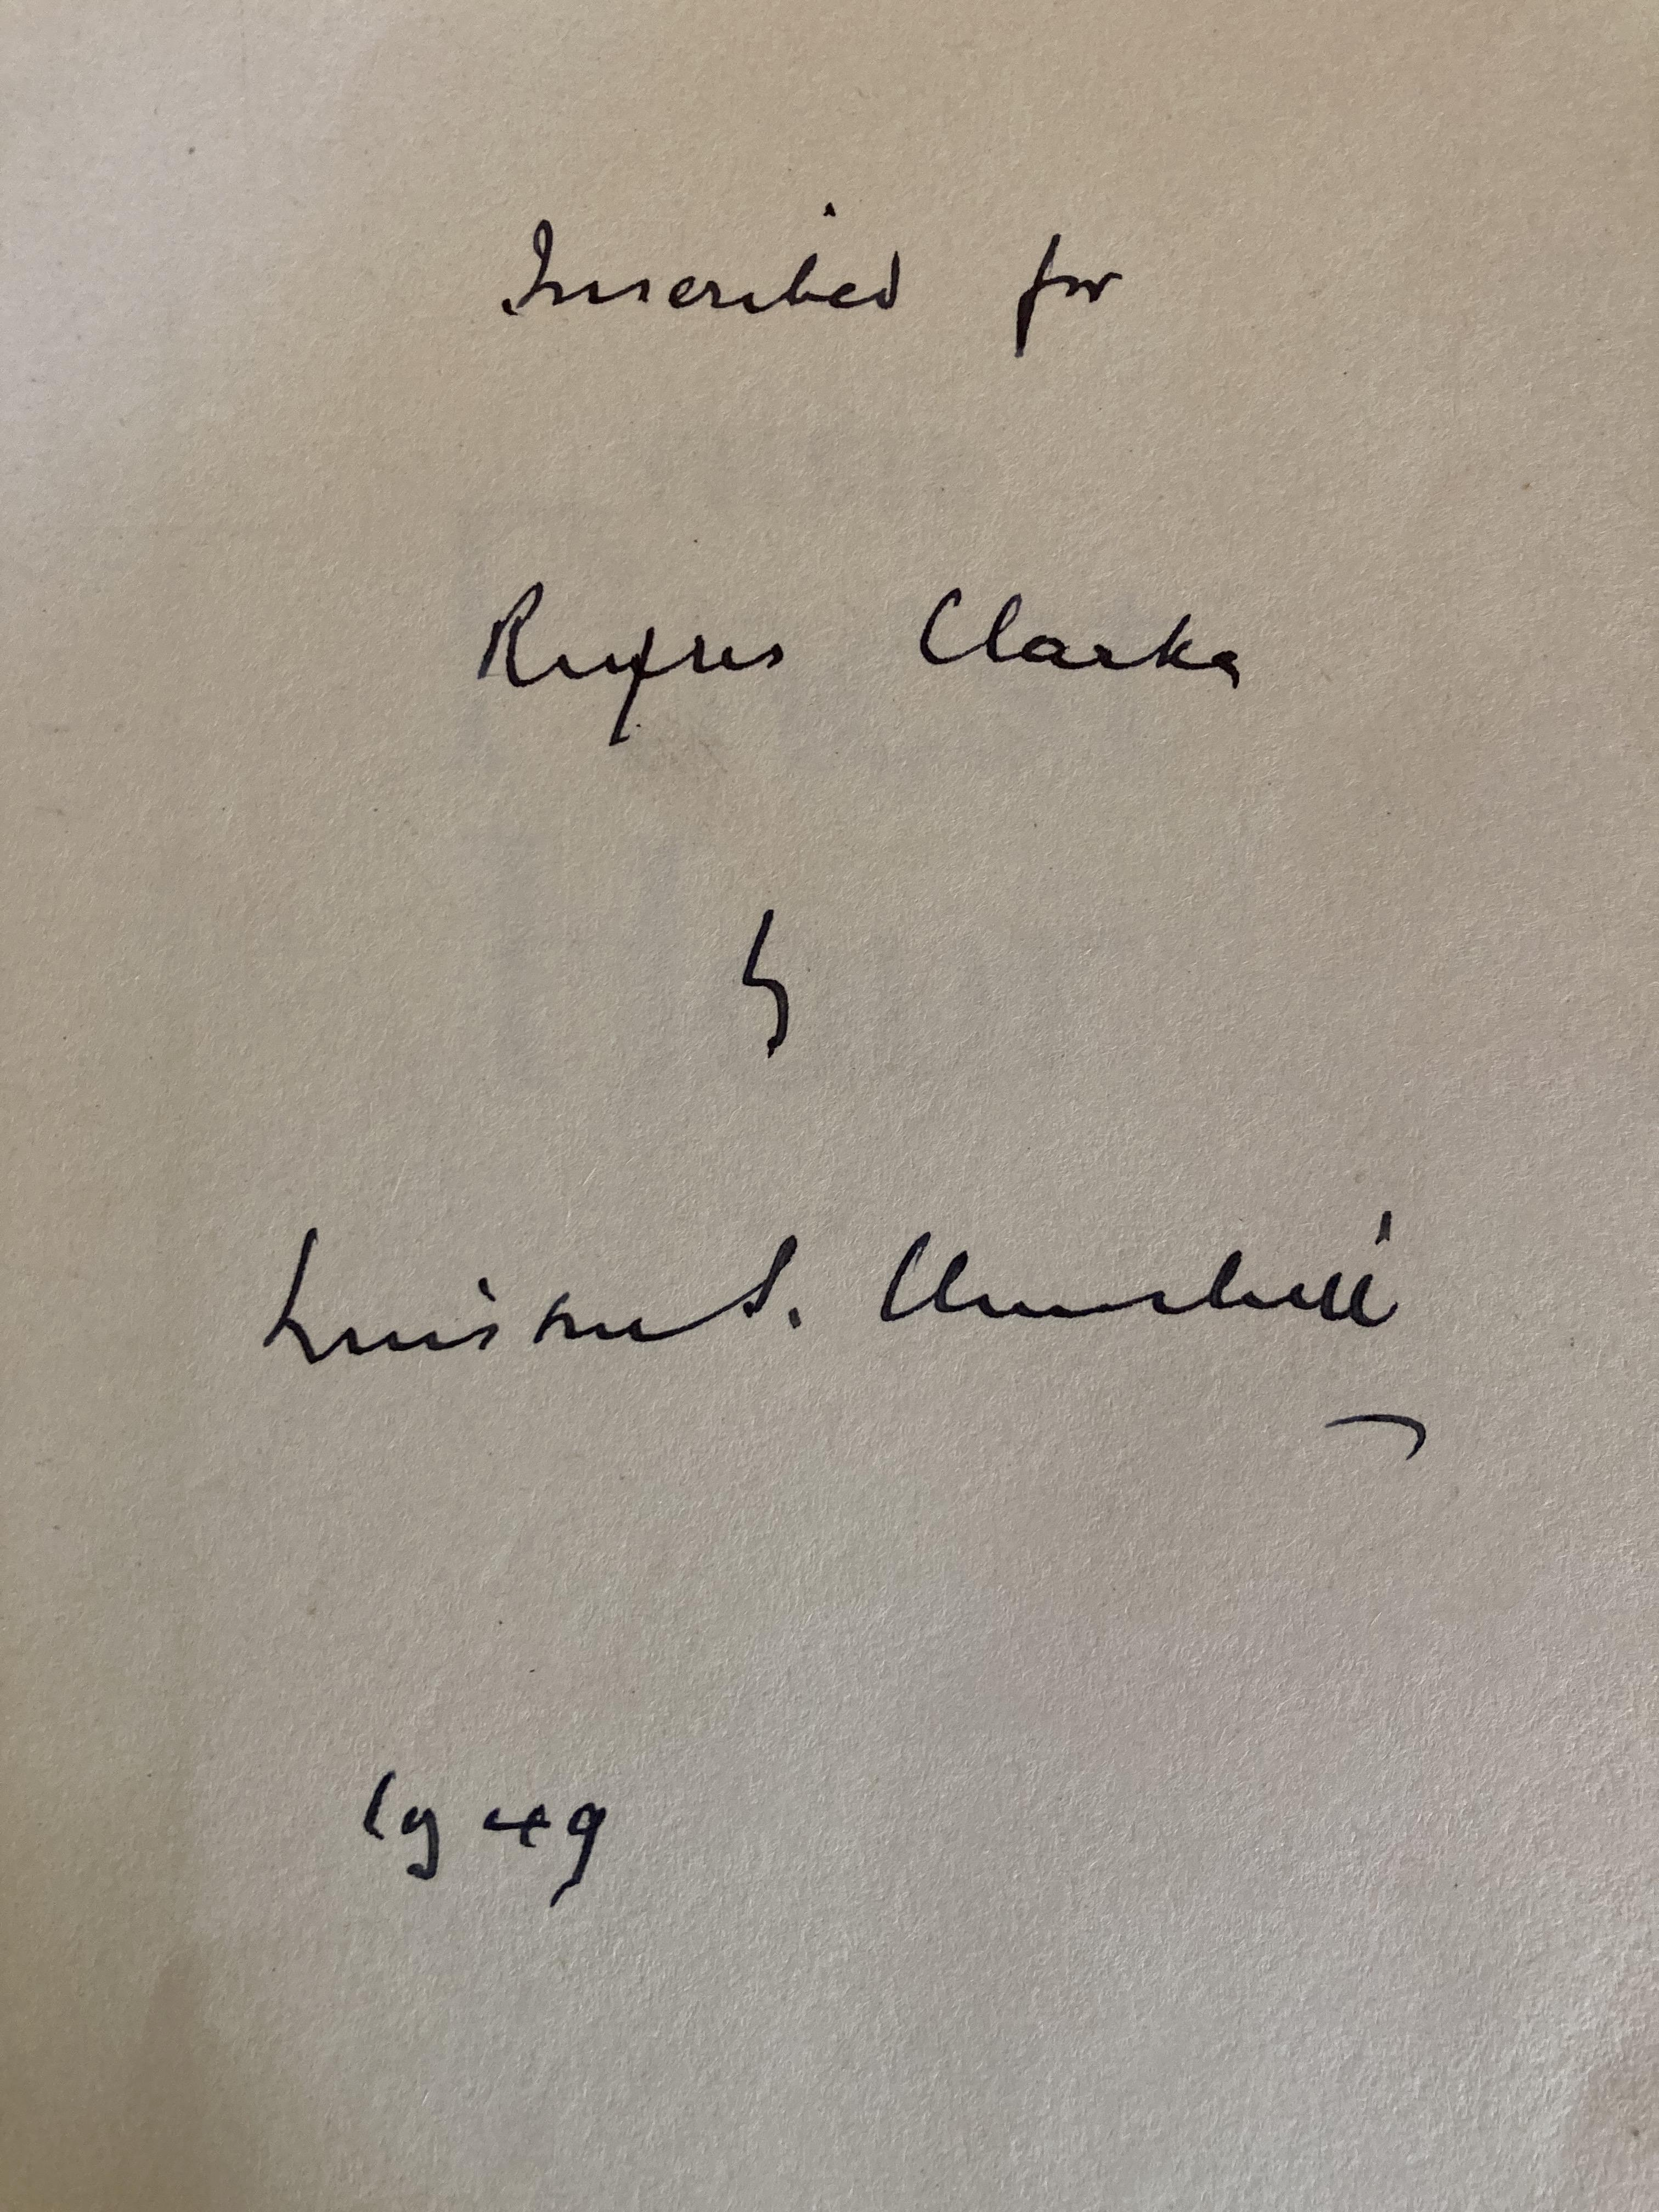 Signed by the Authorÿ Churchill (Winston S.)ÿTheir Finest Hour, Second World War, Vol. II only,